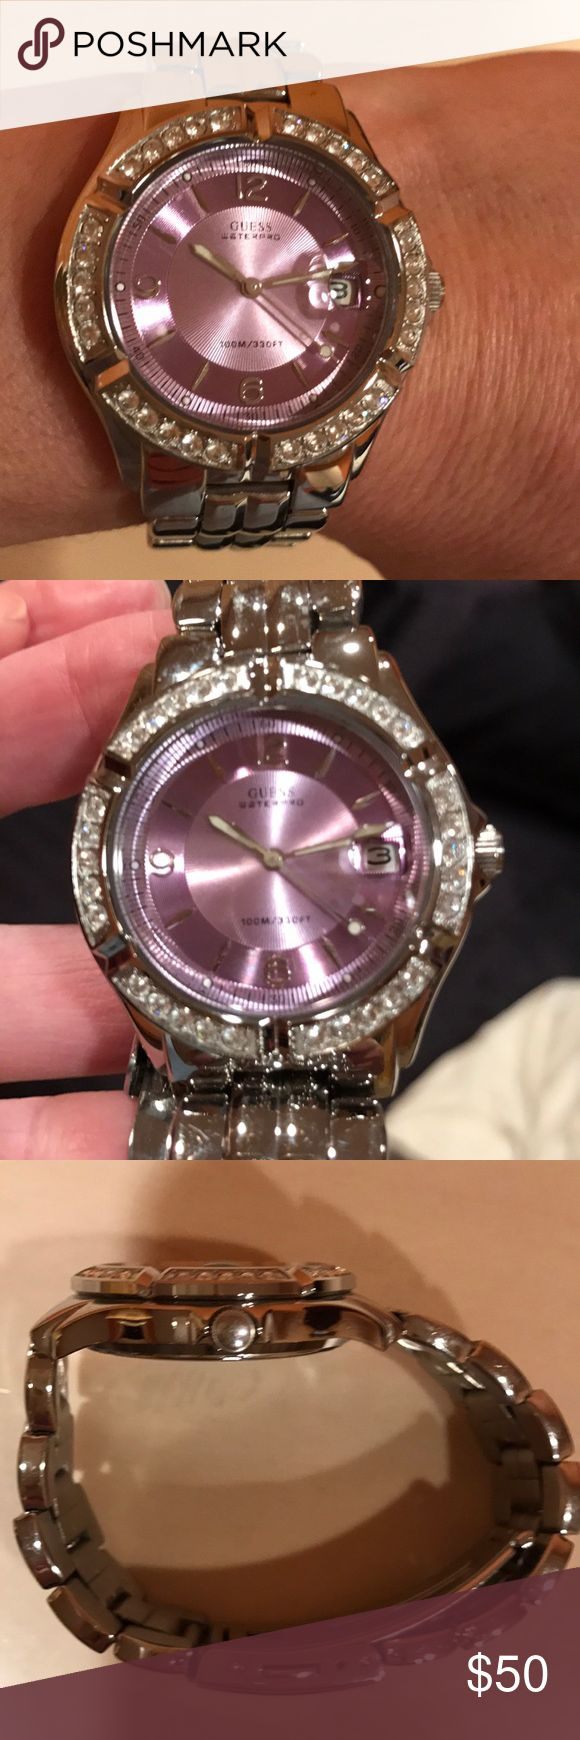 Watch Silver tone watch with lavender face trimmed with rhinestones. Battery needed. Guess Jewelry Bracelets